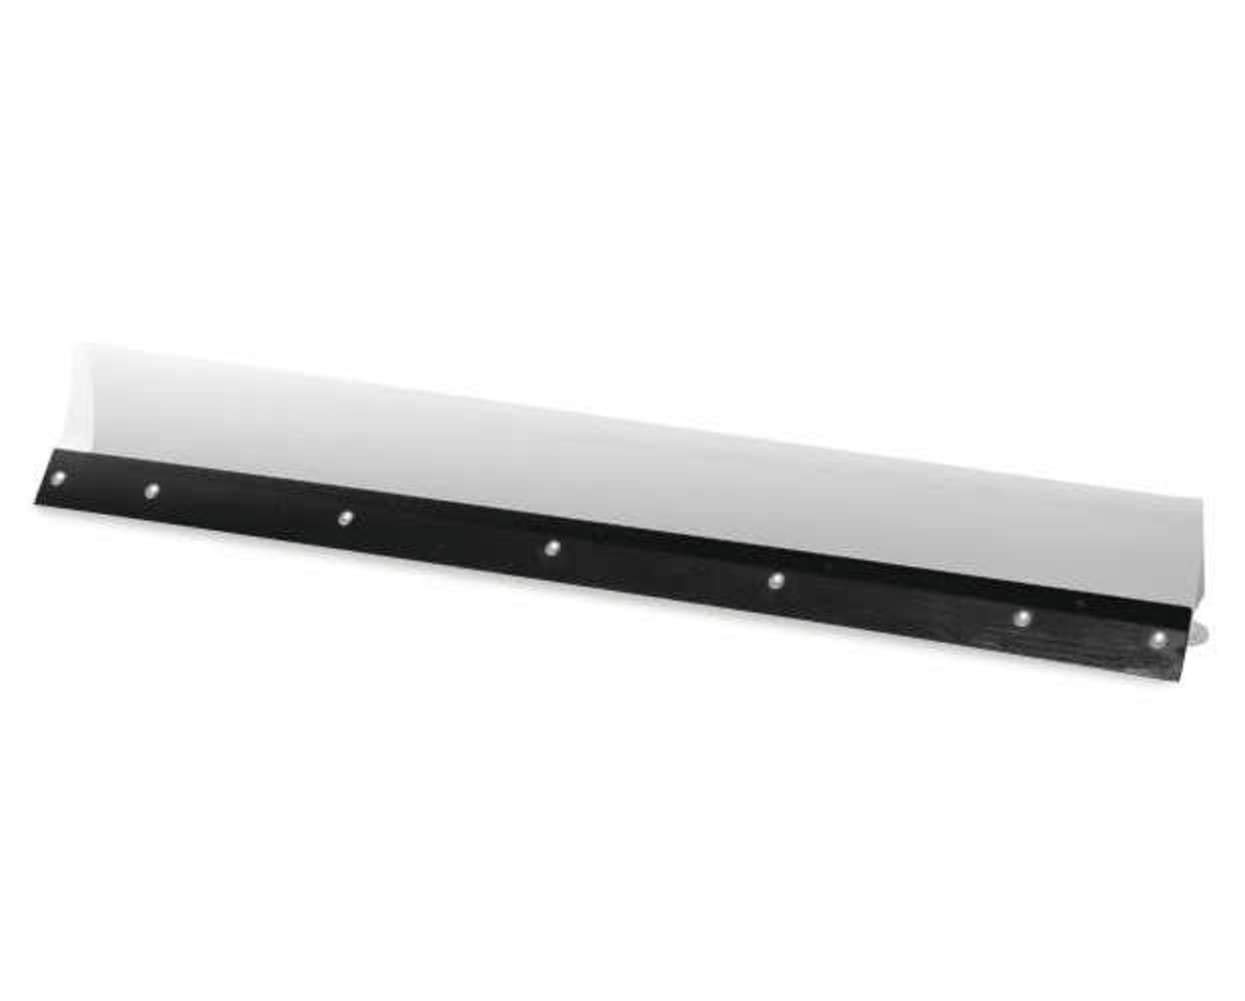 KFI Products CC-12-0130 Replacement Wear Bar for Cycle Country Plow Blades - 48in.